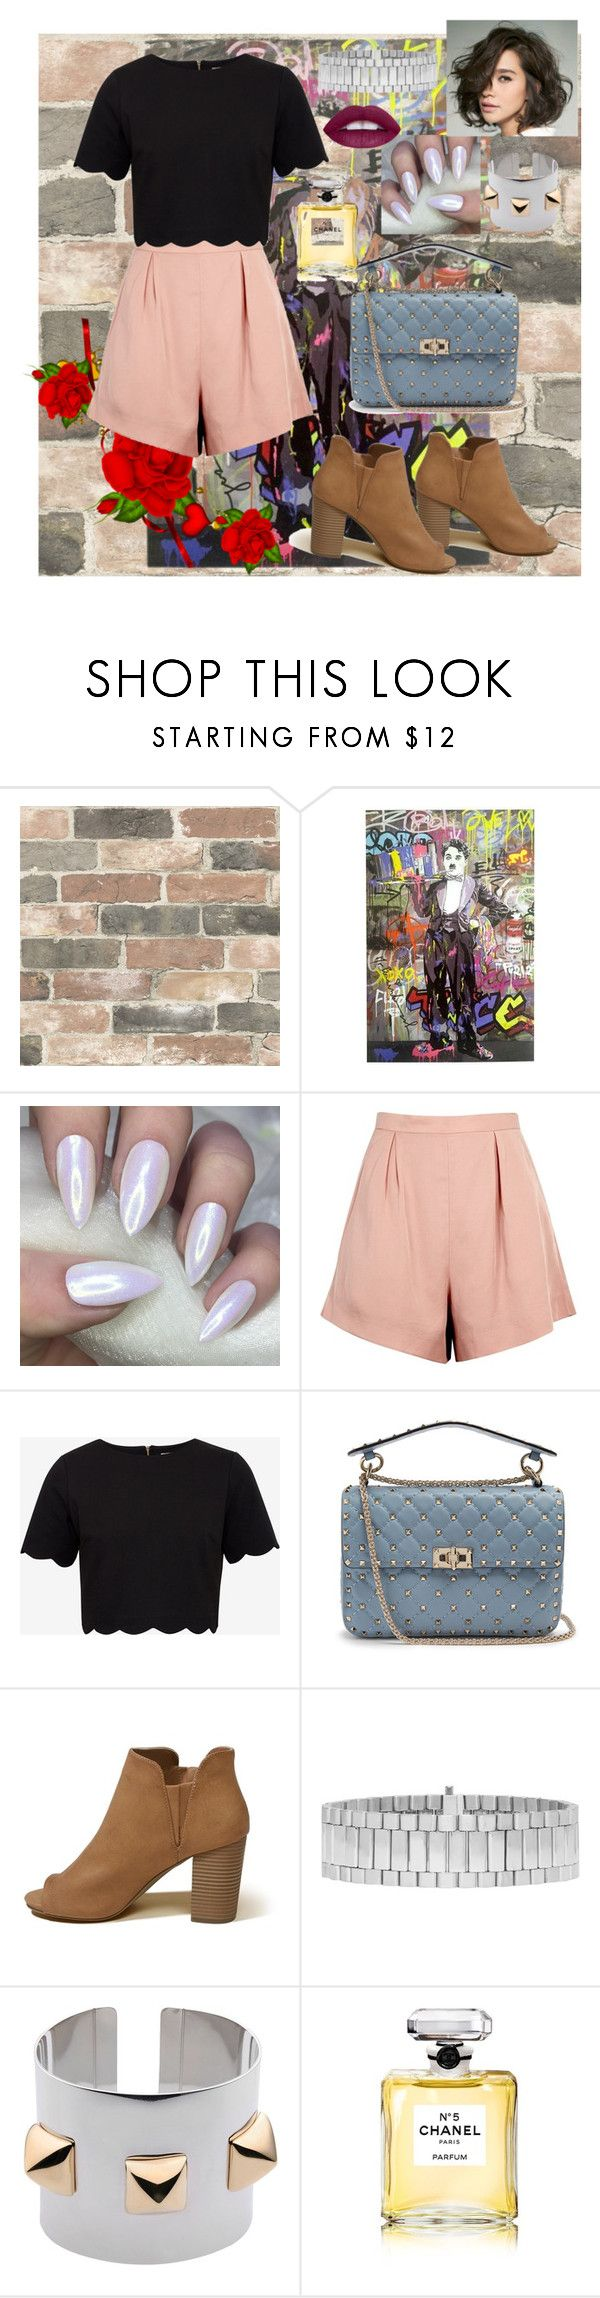 """""""Untitled #60"""" by thebad-thing ❤ liked on Polyvore featuring Wall Pops!, Finders Keepers, Ted Baker, Valentino, Hollister Co., AMBUSH, Carla G., Chanel and L.A. Girl"""